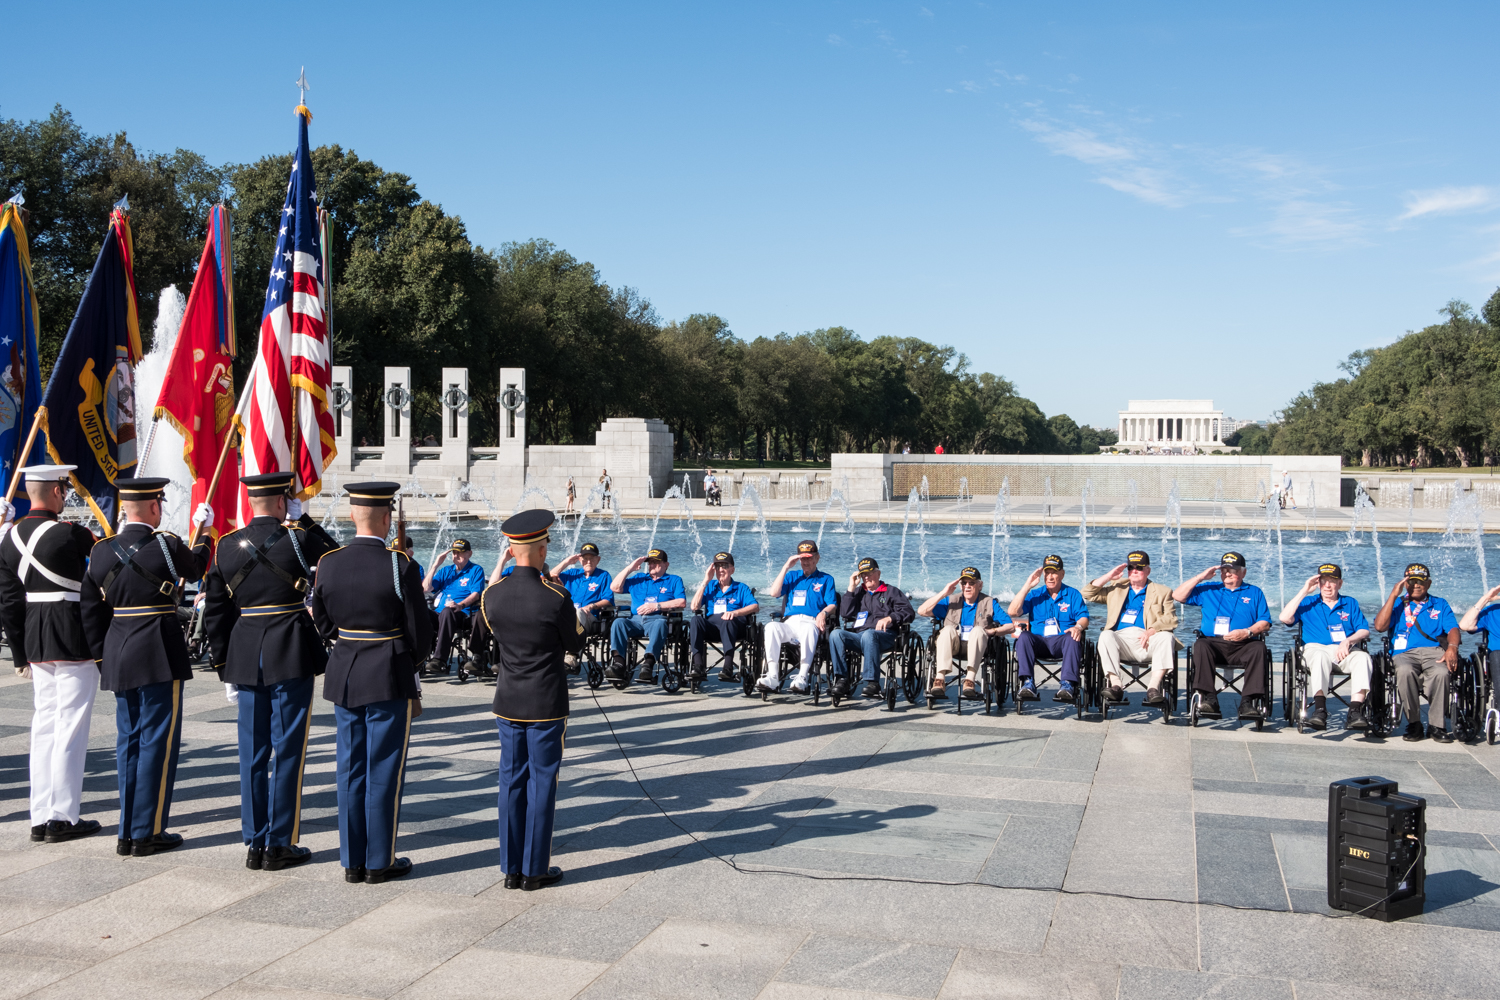 Veterans from Houston, Texas, line up at the World War II Memorial in Washington, D.C. and salute The Color Guard during an Honor Flight event. Honor Flight is when veterans from around America visit the memorials on The National Mall.